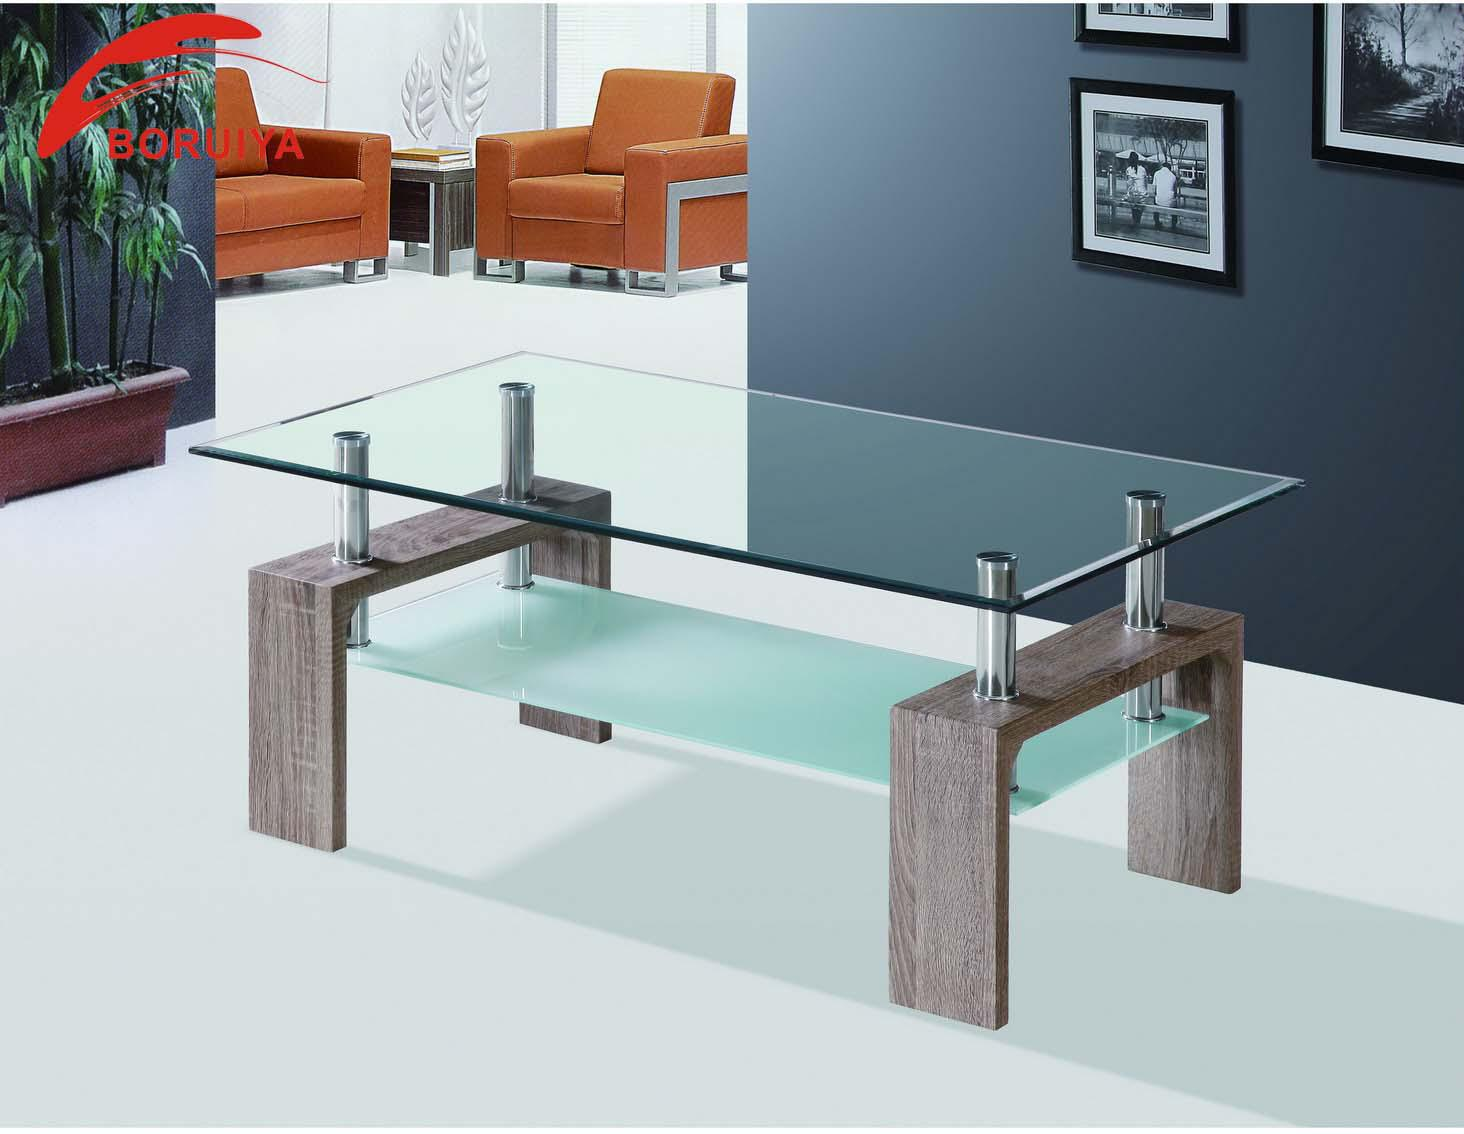 living room furniture center table design coffee table tempered glass material top living room furniture - Design Living Room Tables